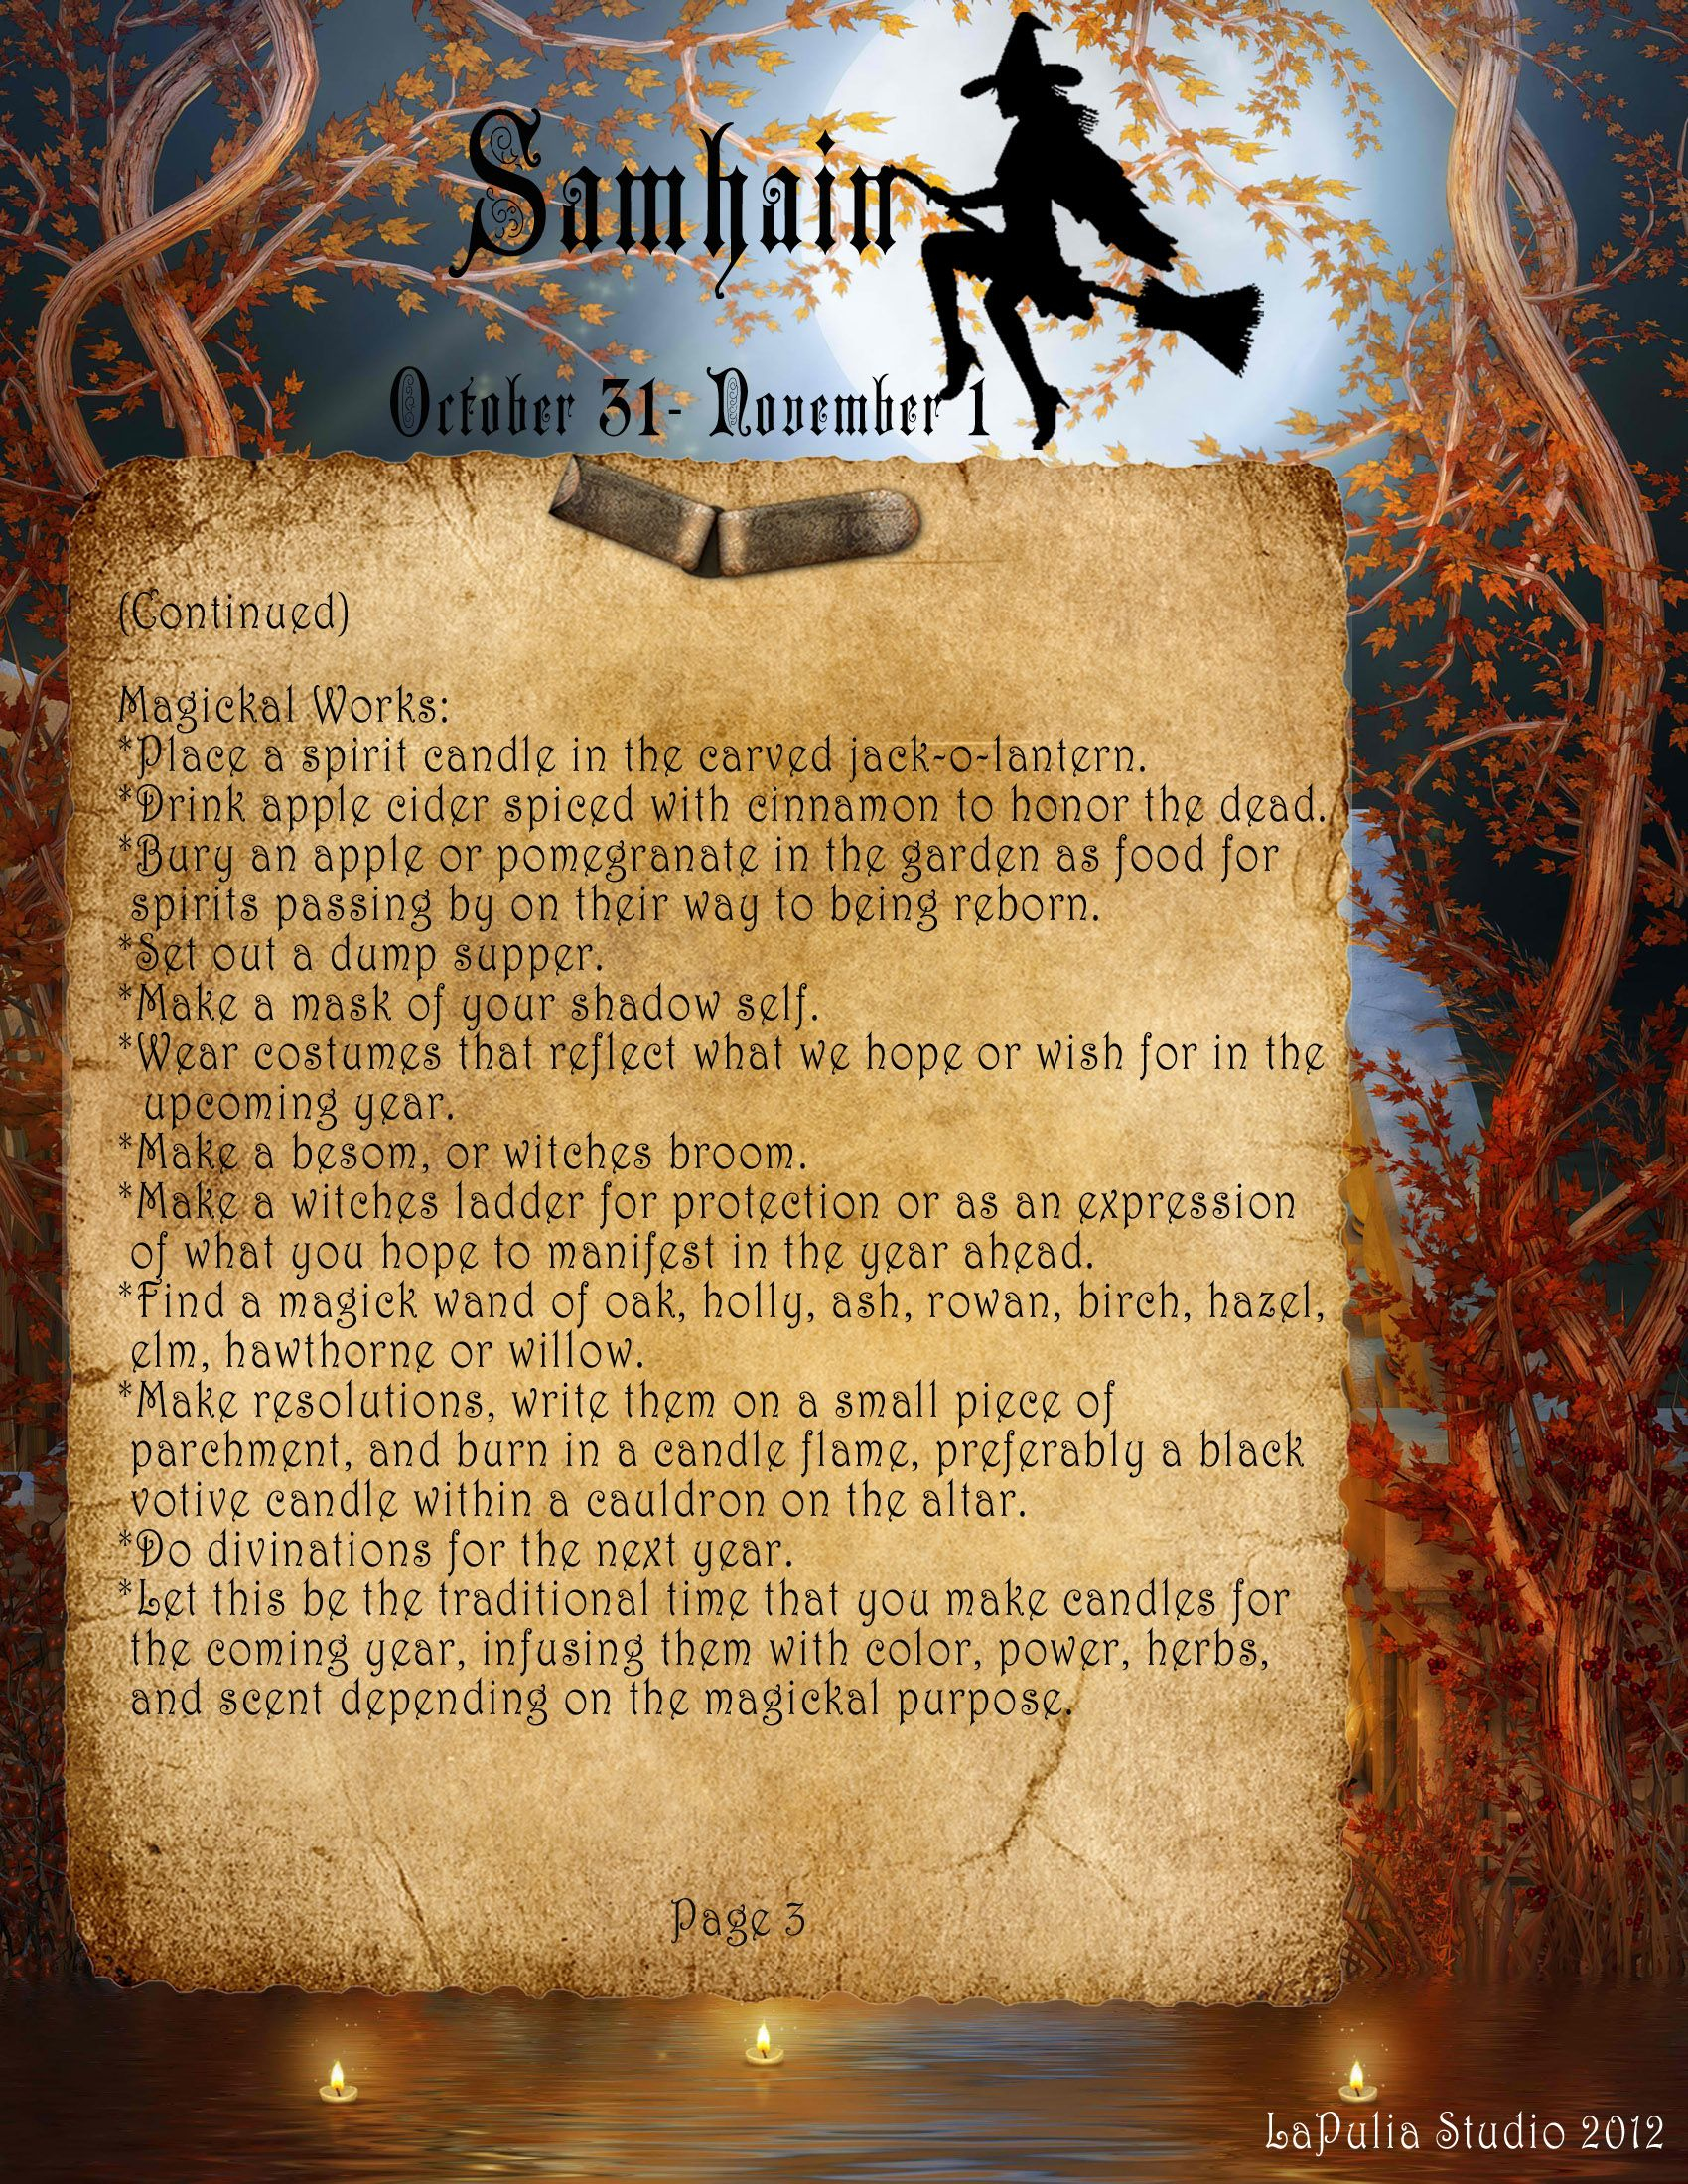 samhain page 3 visit lapulia studio website to download your free book of shadows - Free Page 3